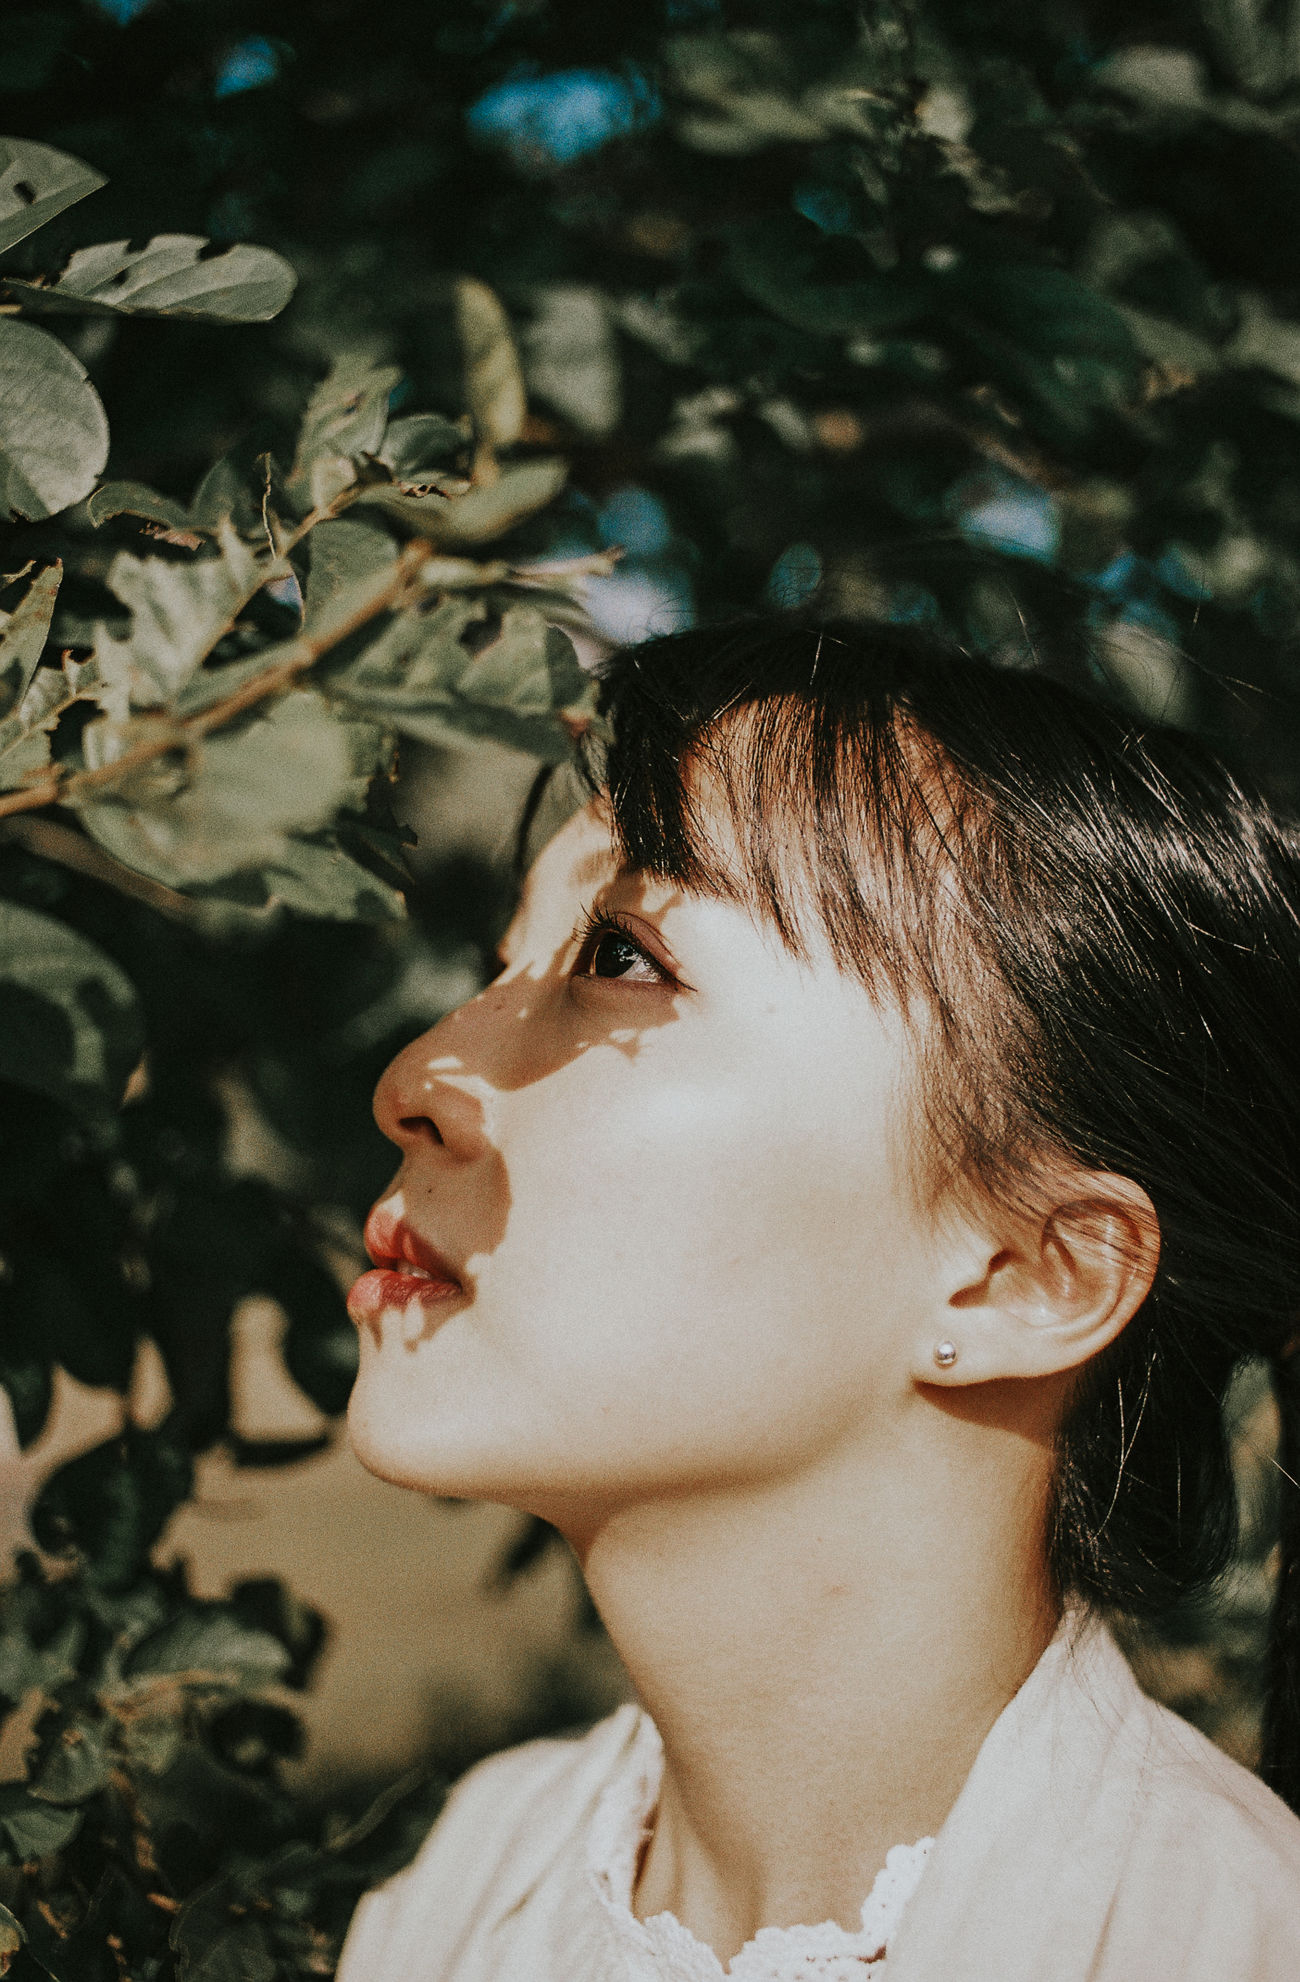 Beautiful Woman Close-up Day Flower Focus On Foreground Hair Bun Headshot Leaf Lifestyles Nature One Person One Young Woman Only Outdoors People Real People The Portraitist - 2017 EyeEm Awards Tree Young Adult Young Women